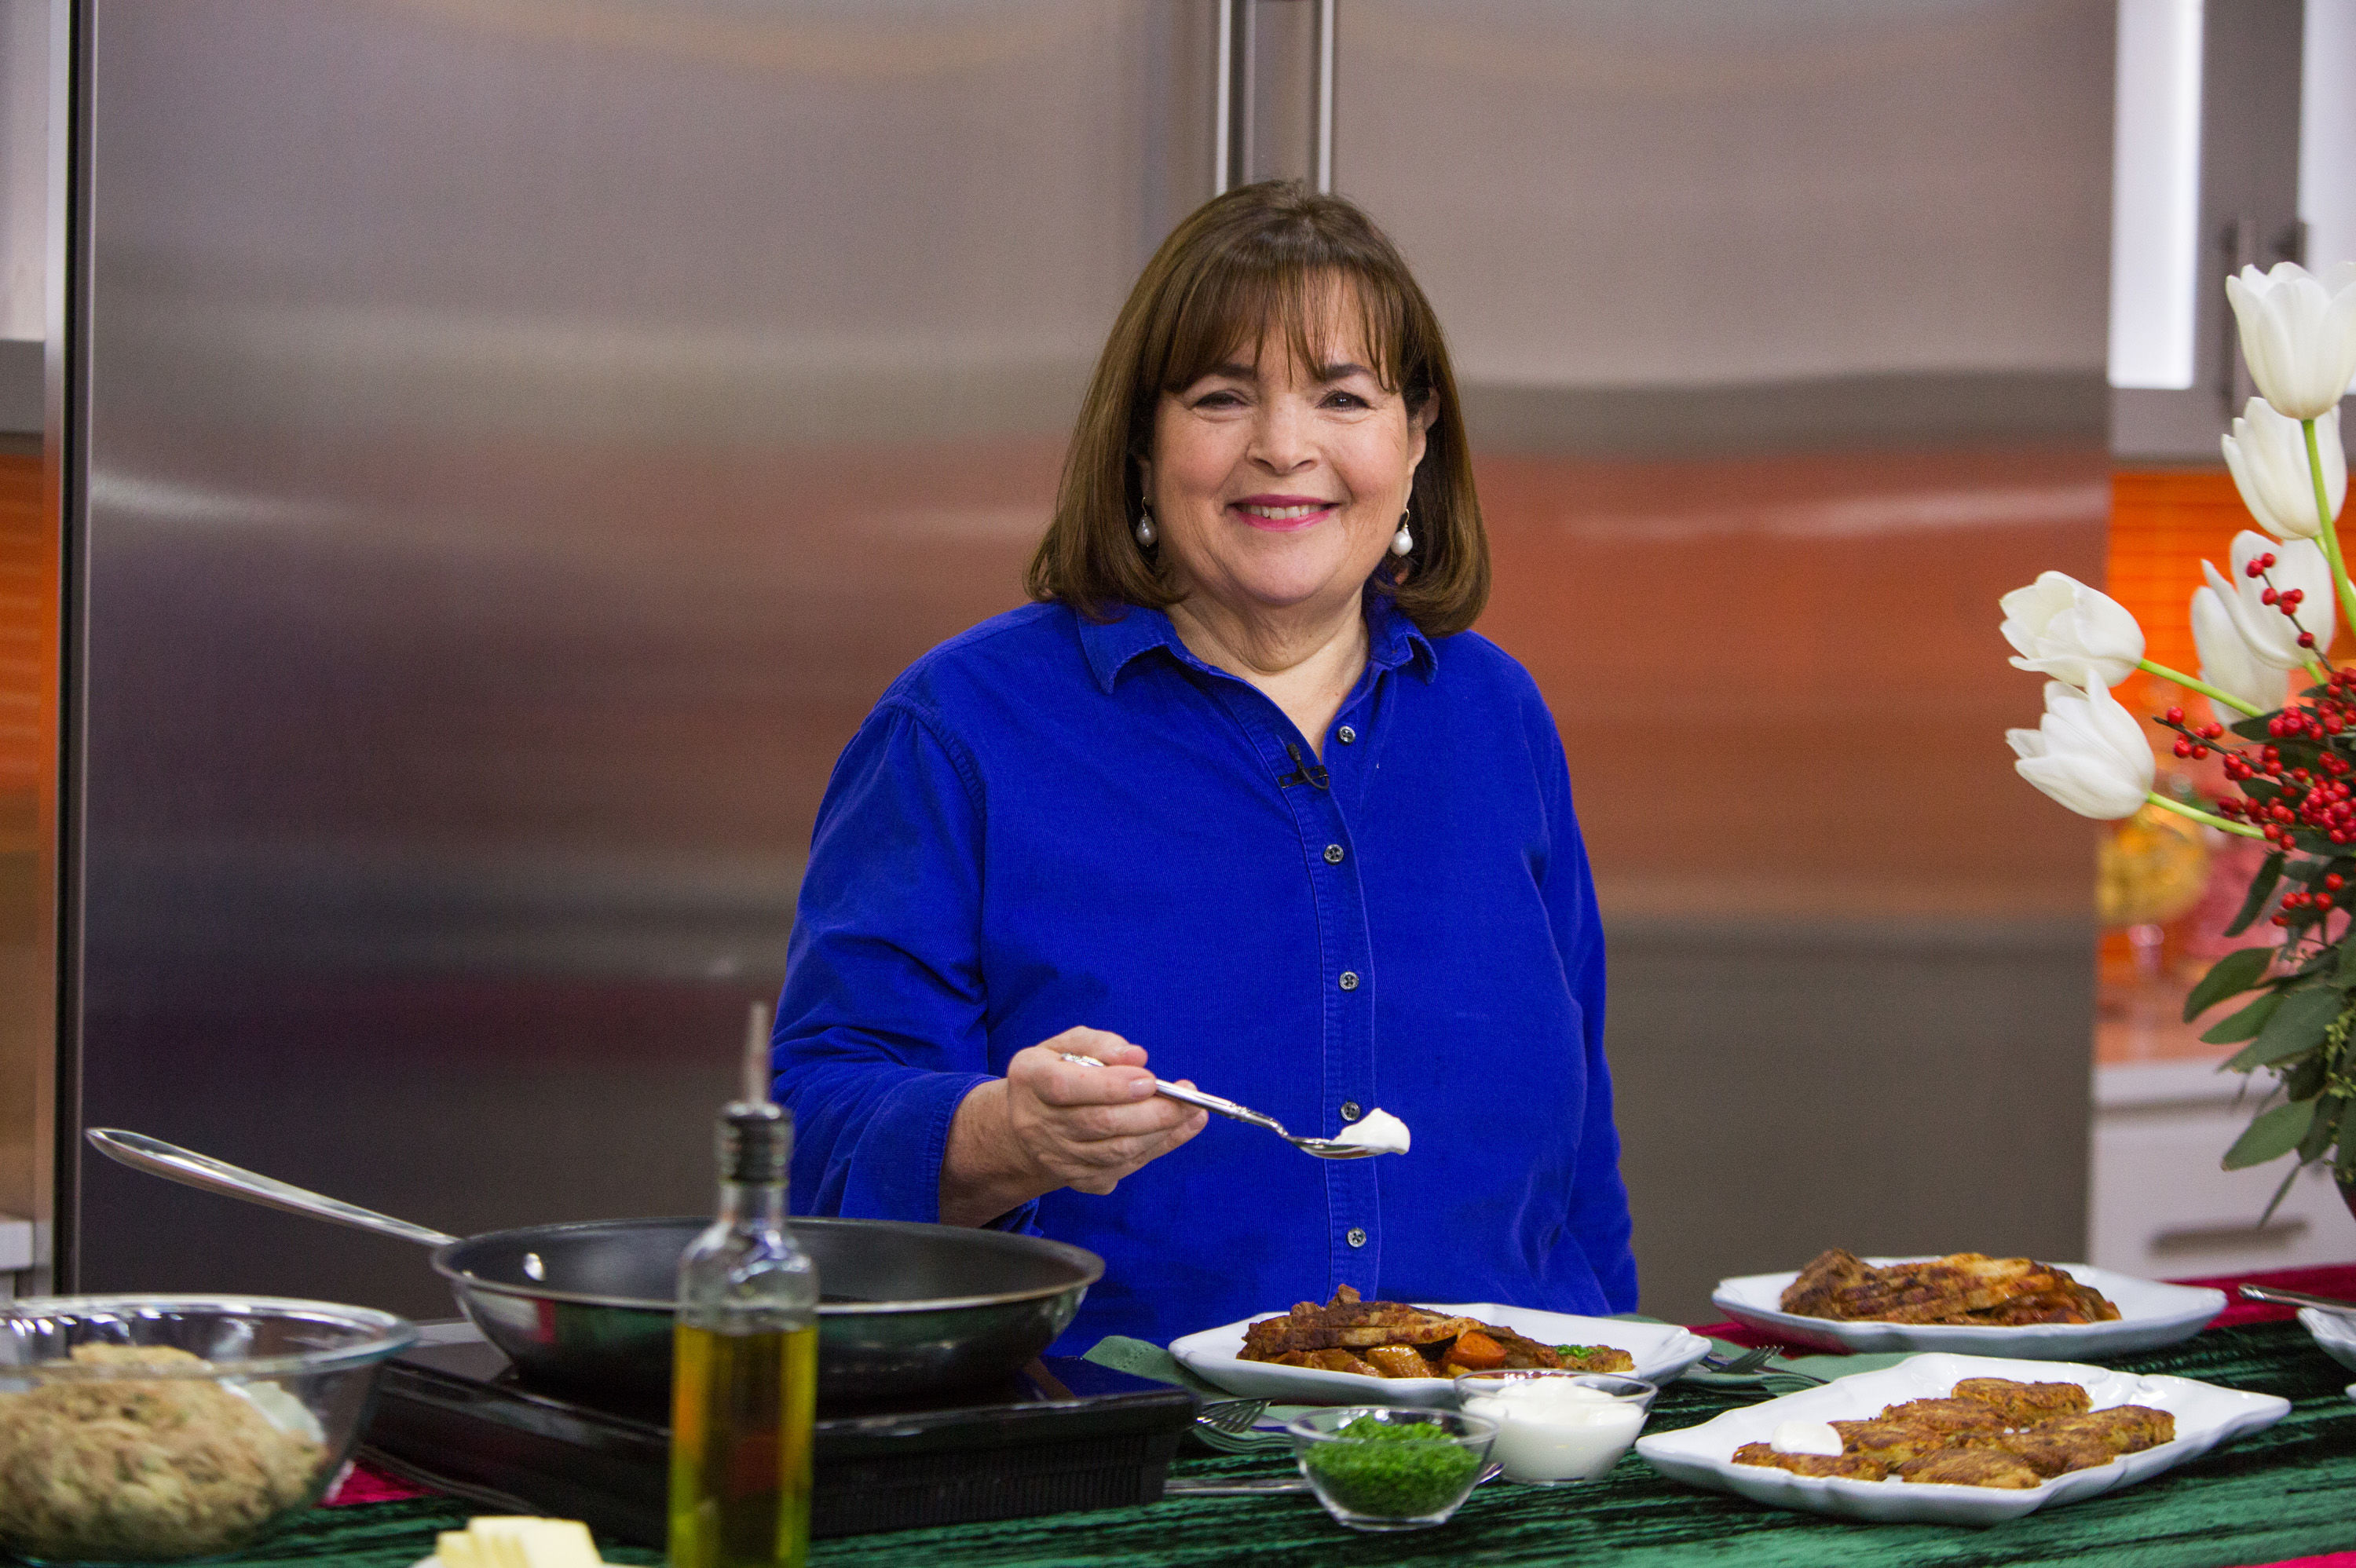 Ina Garten Debuted a Stunning $15,500 Custom French Stove And You Have to See It